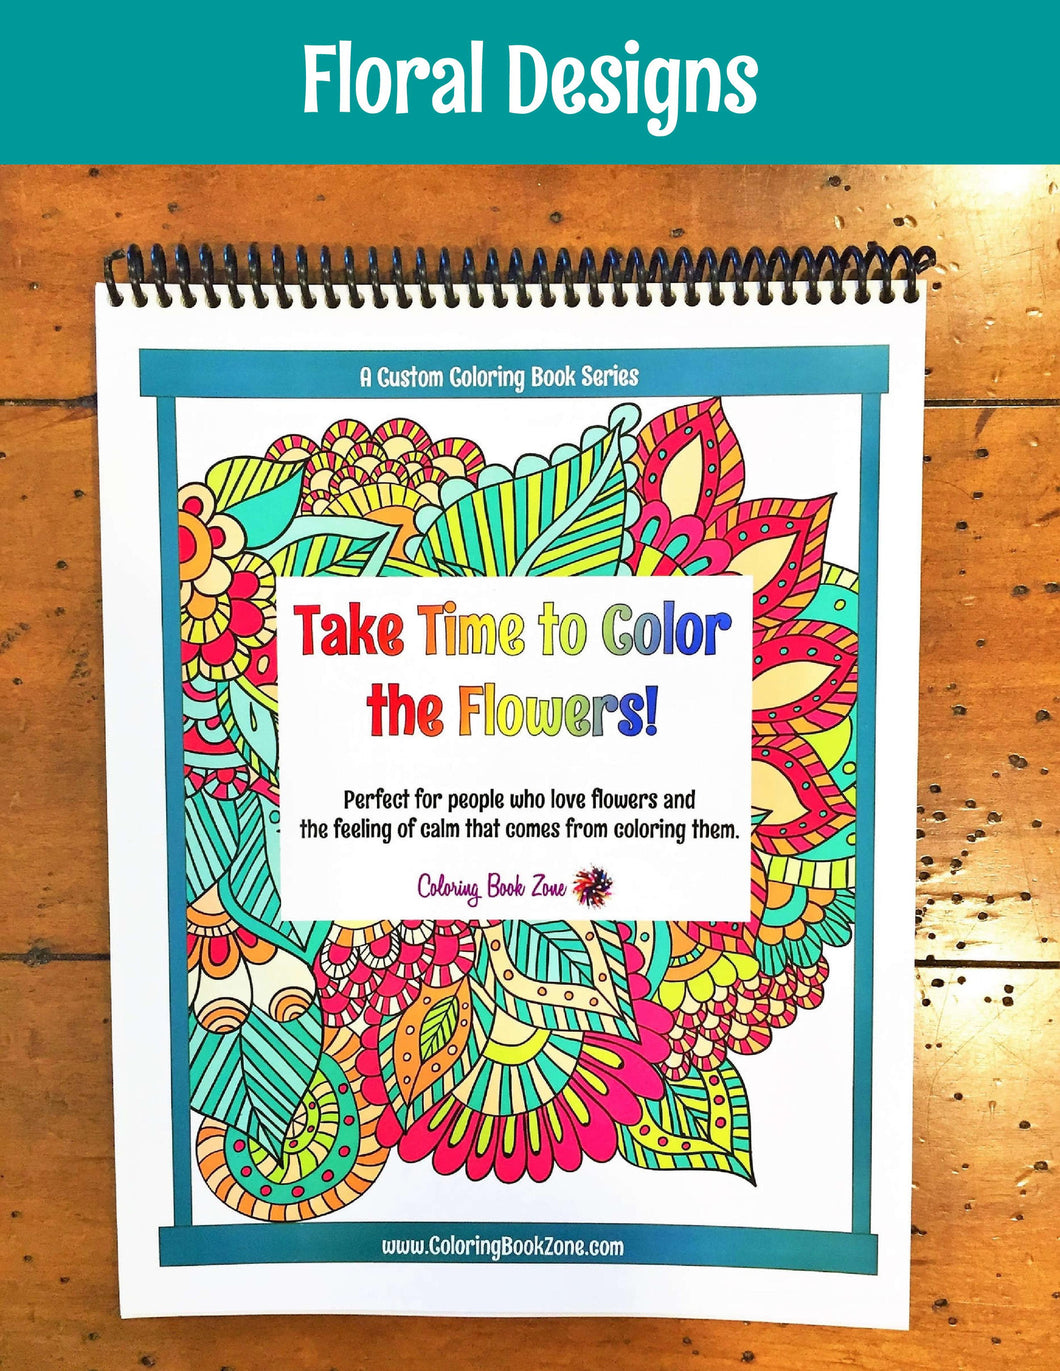 Take Time To Color The Flowers Coloring Book - Live Your Life in Color Series - Coloring Book Zone